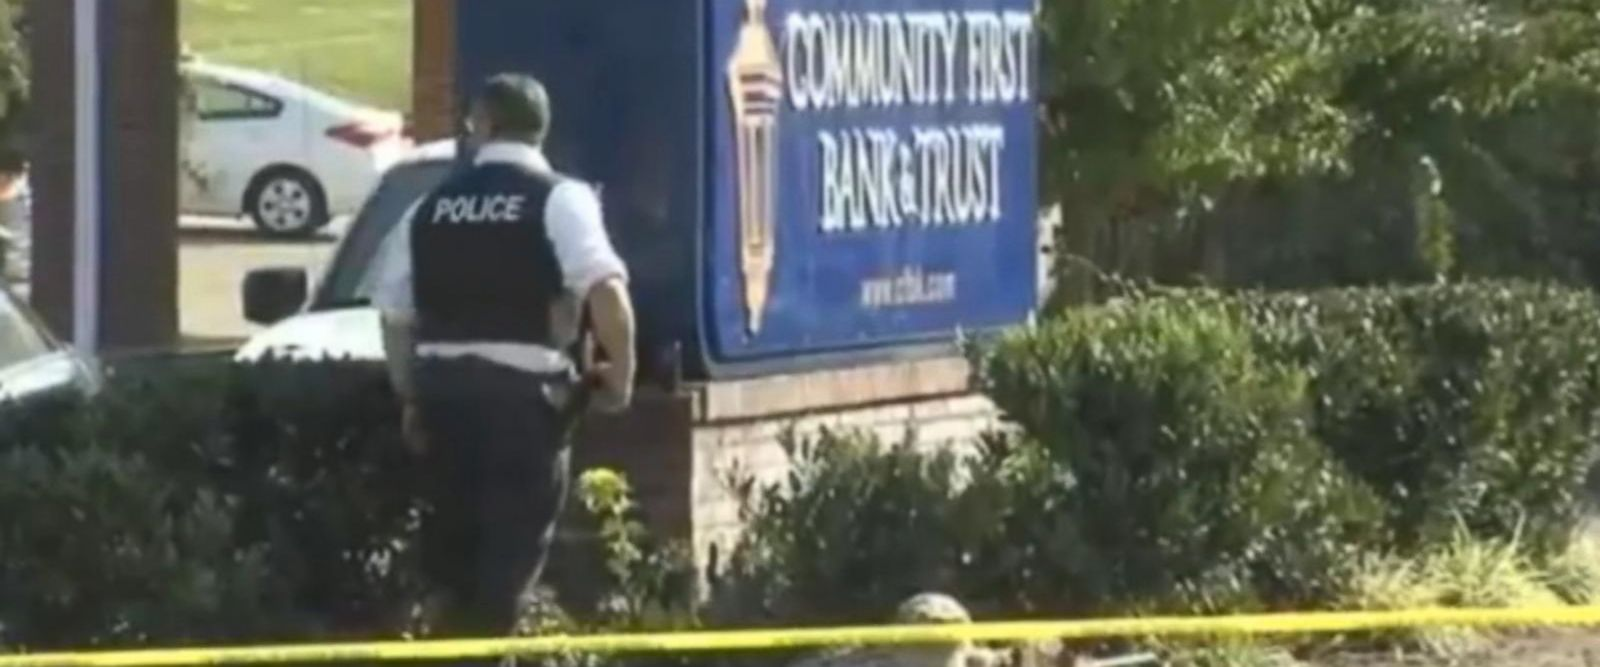 VIDEO: Hostage situation unfolding at a bank in Tennessee